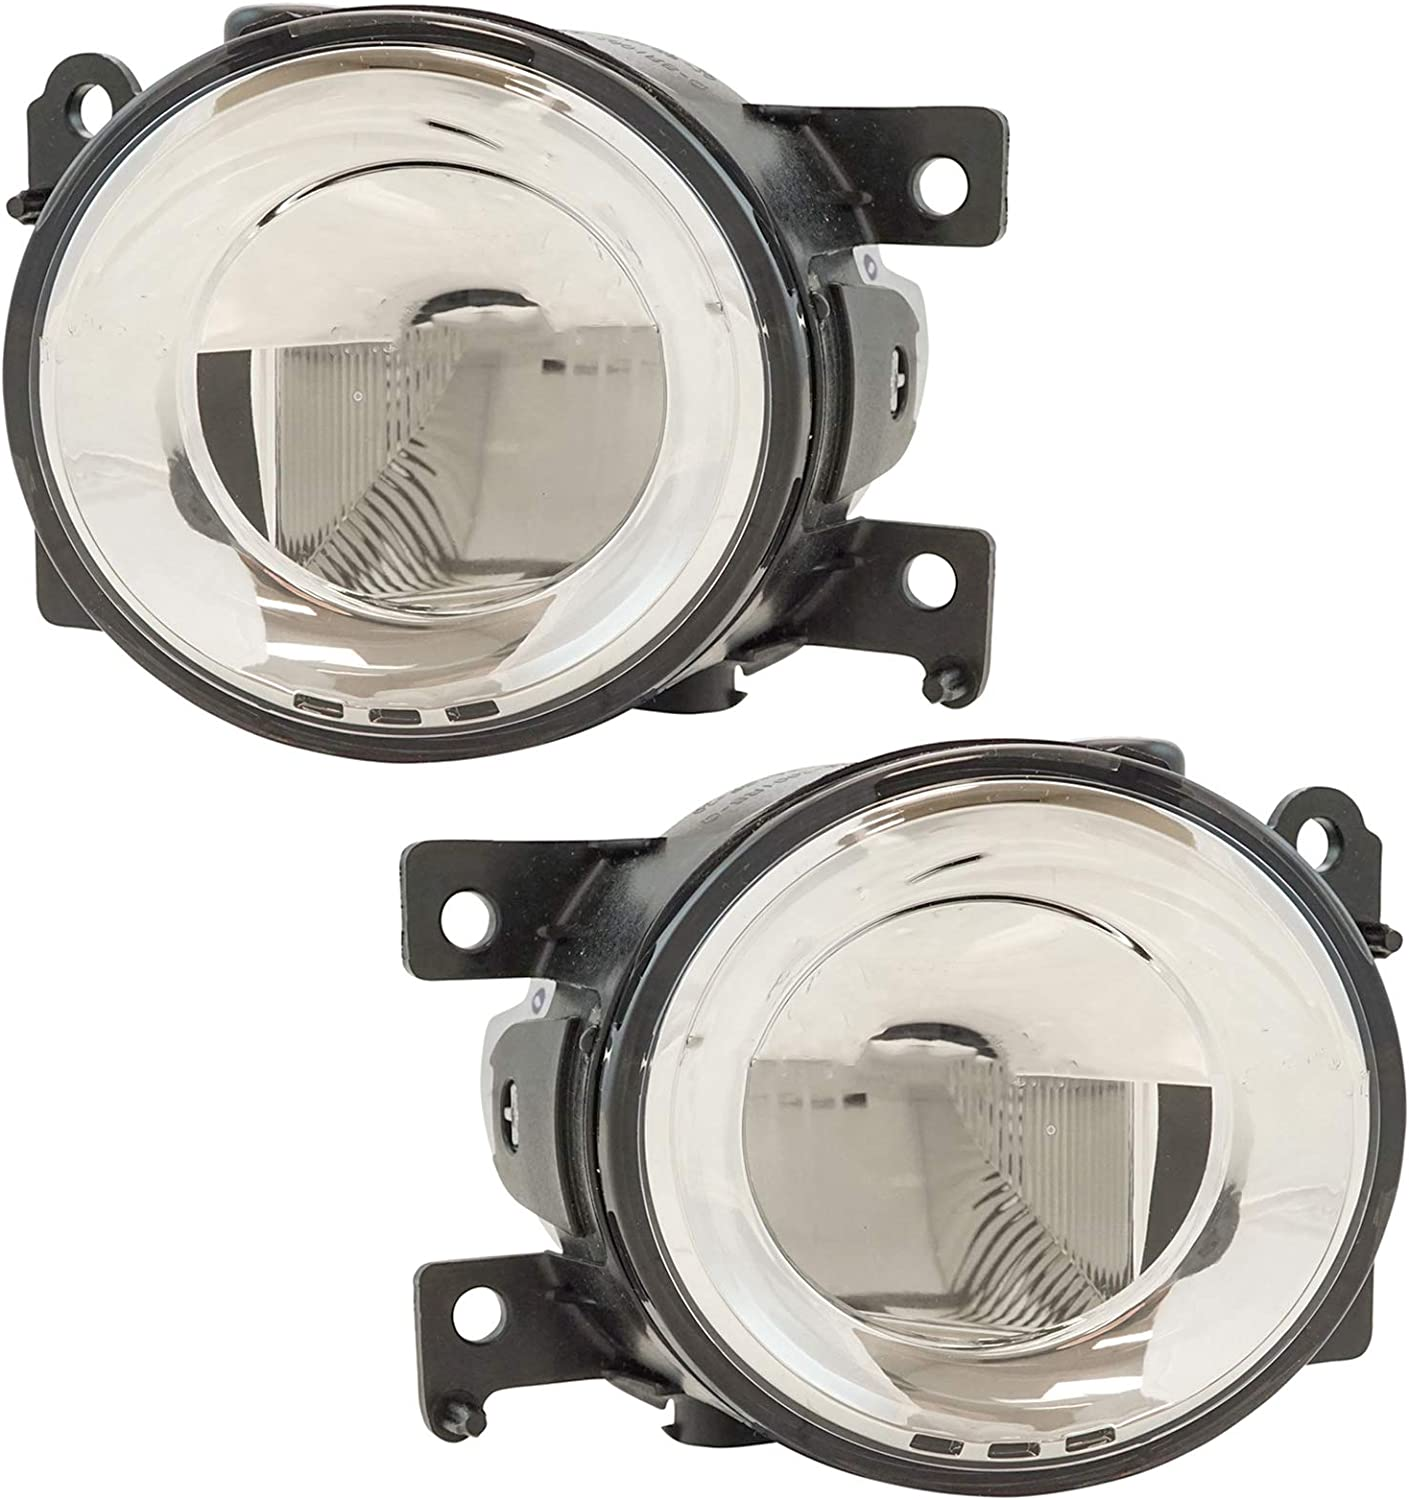 1A Auto Inventory cleanup selling sale 5 popular Front Bumper Mounted Fog Light Lamp Pair LH for Inf RH